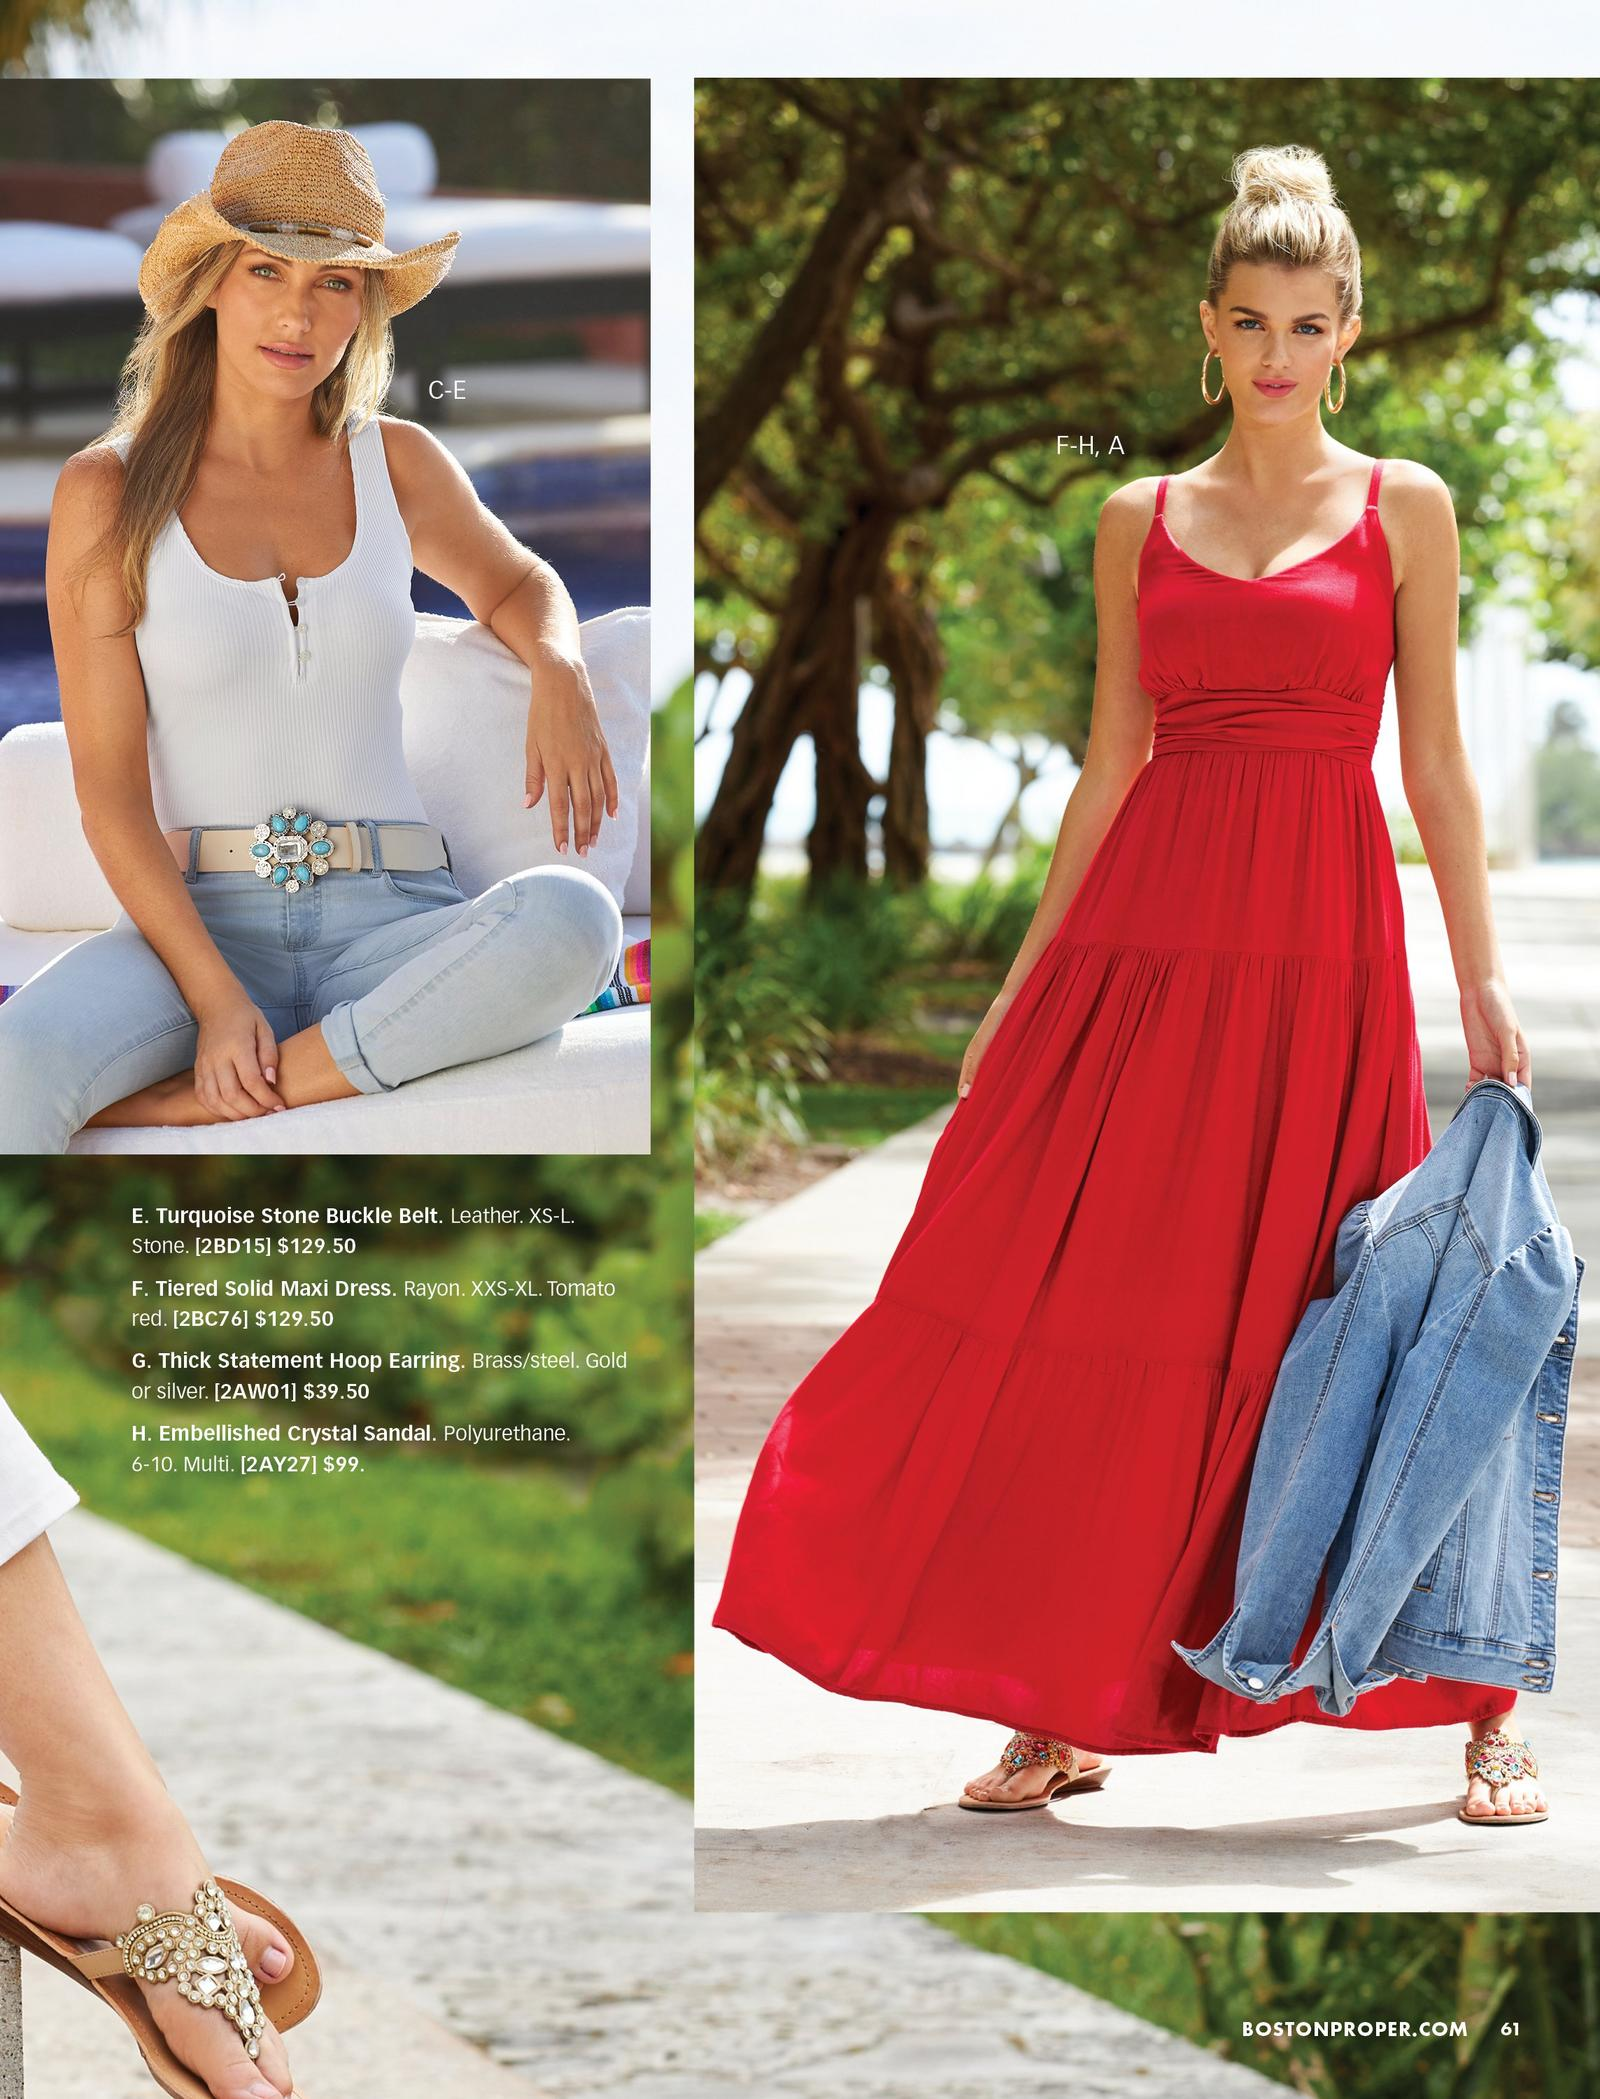 left model wearing a white henley tank top, white belt with turquoise stone embellishments, gold embellished cowboy hat, and light wash jeans. right model wearing a red sleeveless tiered maxi dress, multicolored jeweled sandals, and holding a jean jacket.